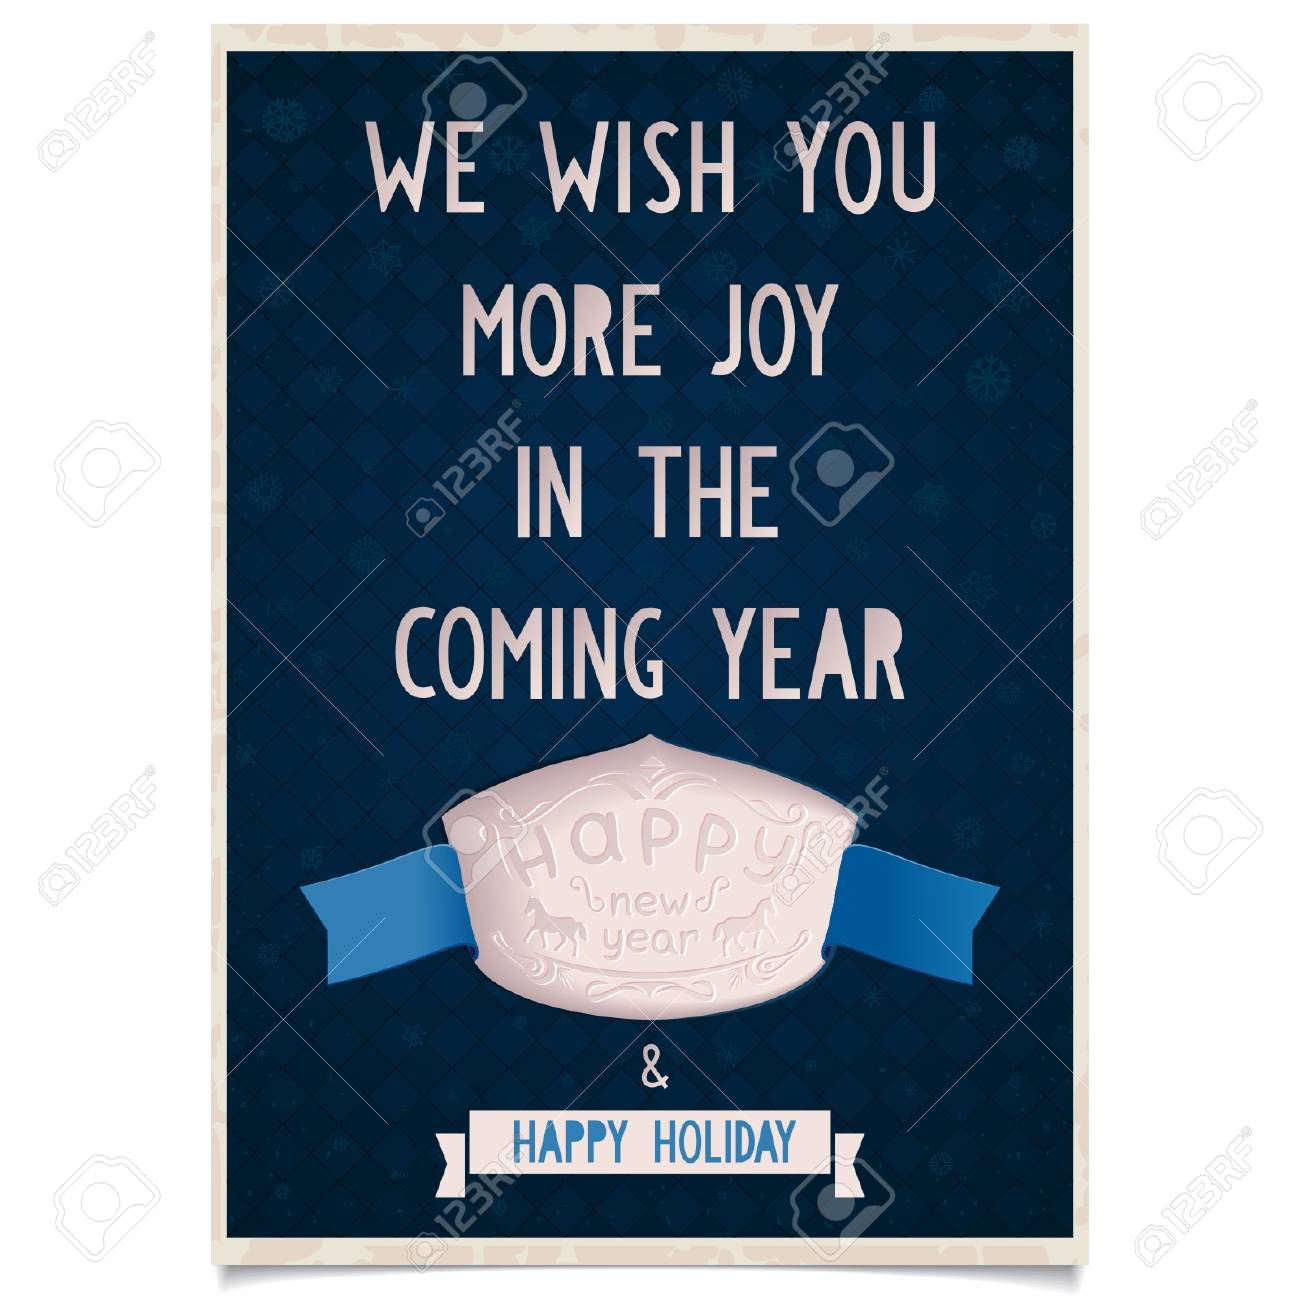 Template New Year Greeting Card With Wishes Of Joy And Happy